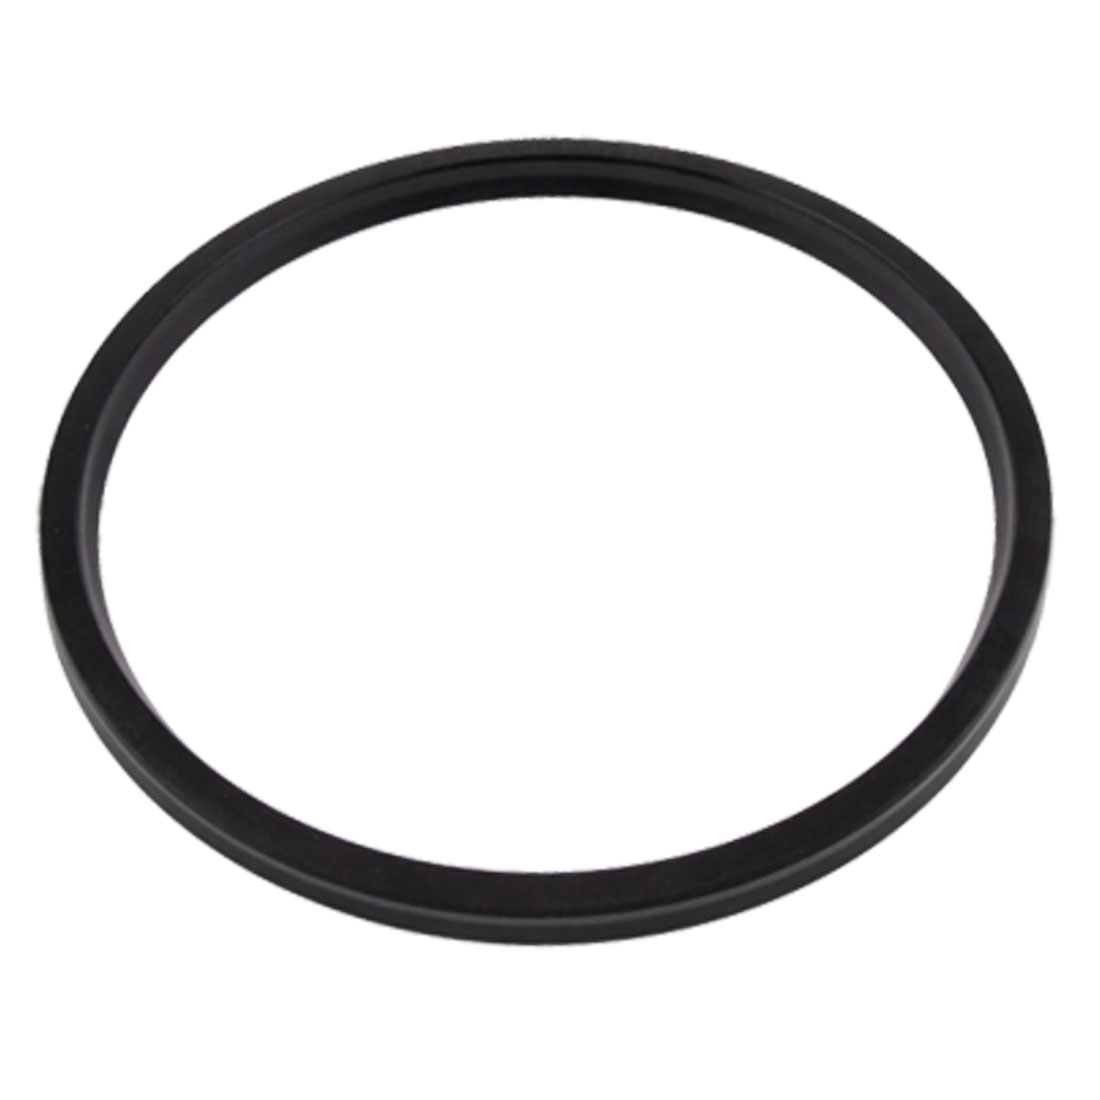 145mm-160mm-9mm-USH-Rubber-Oil-Seal-for-Automobile